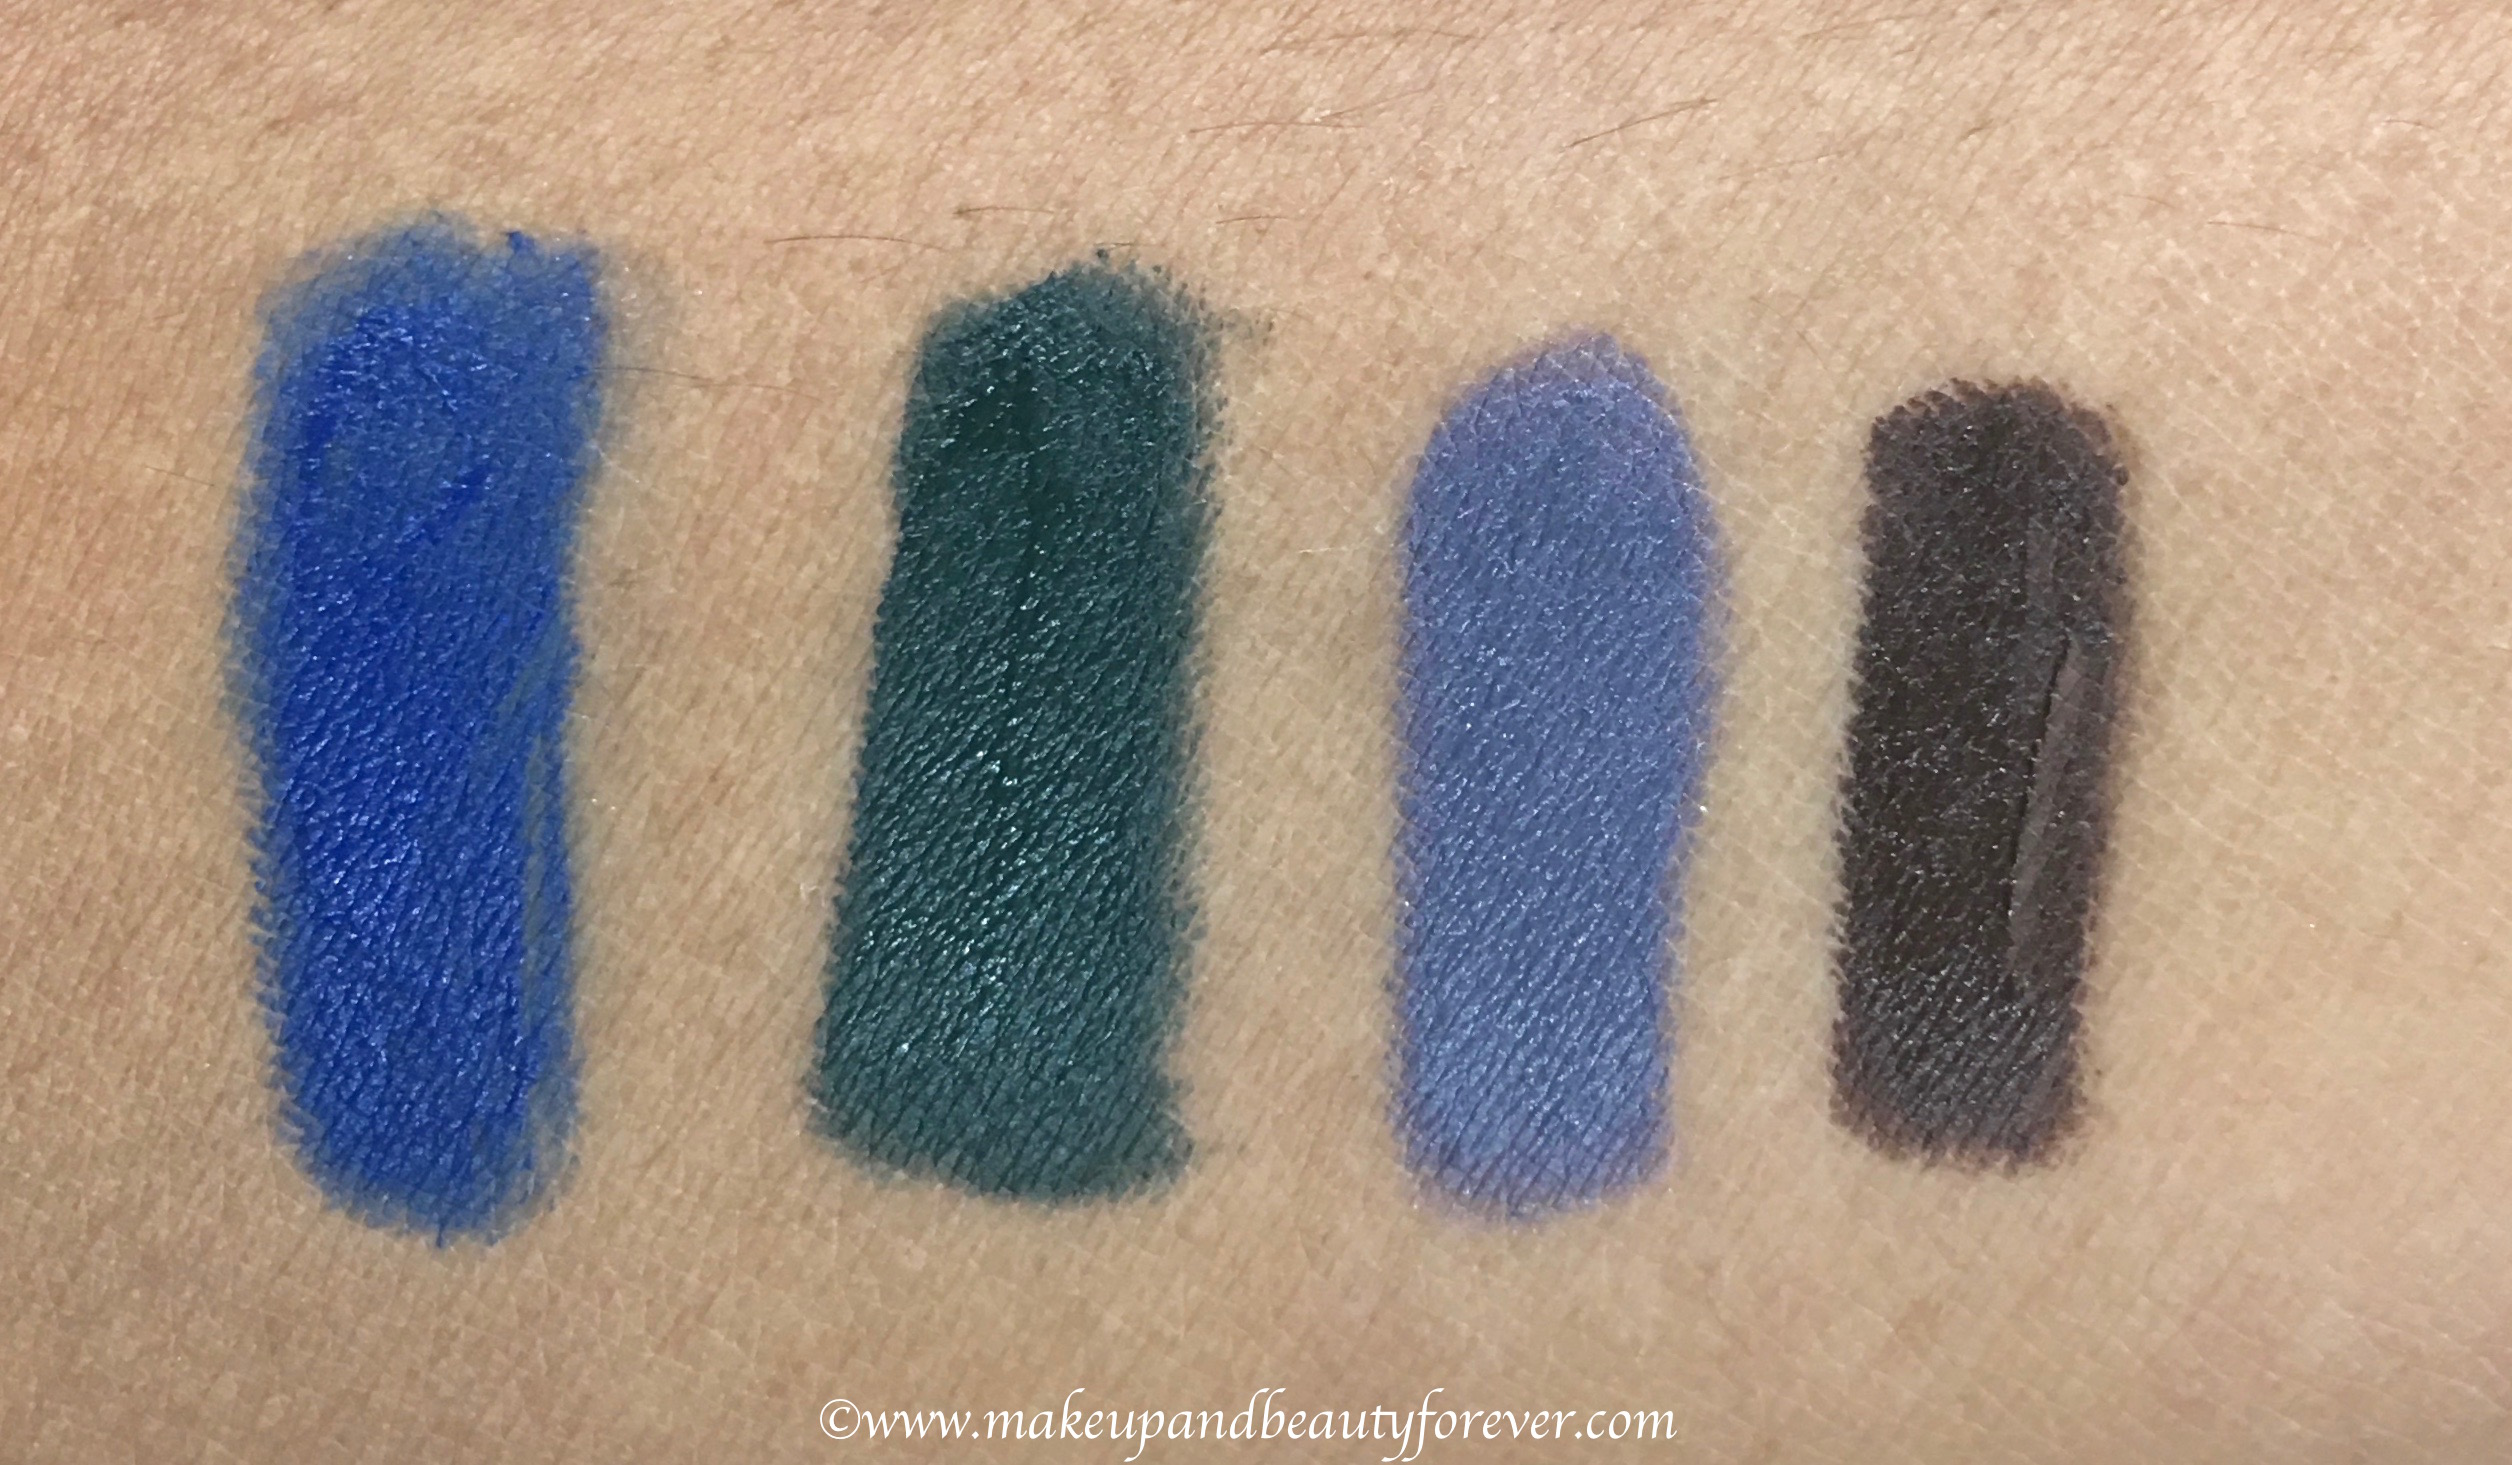 all faces ultime pro mystic kajal 4 shades review swatches blue